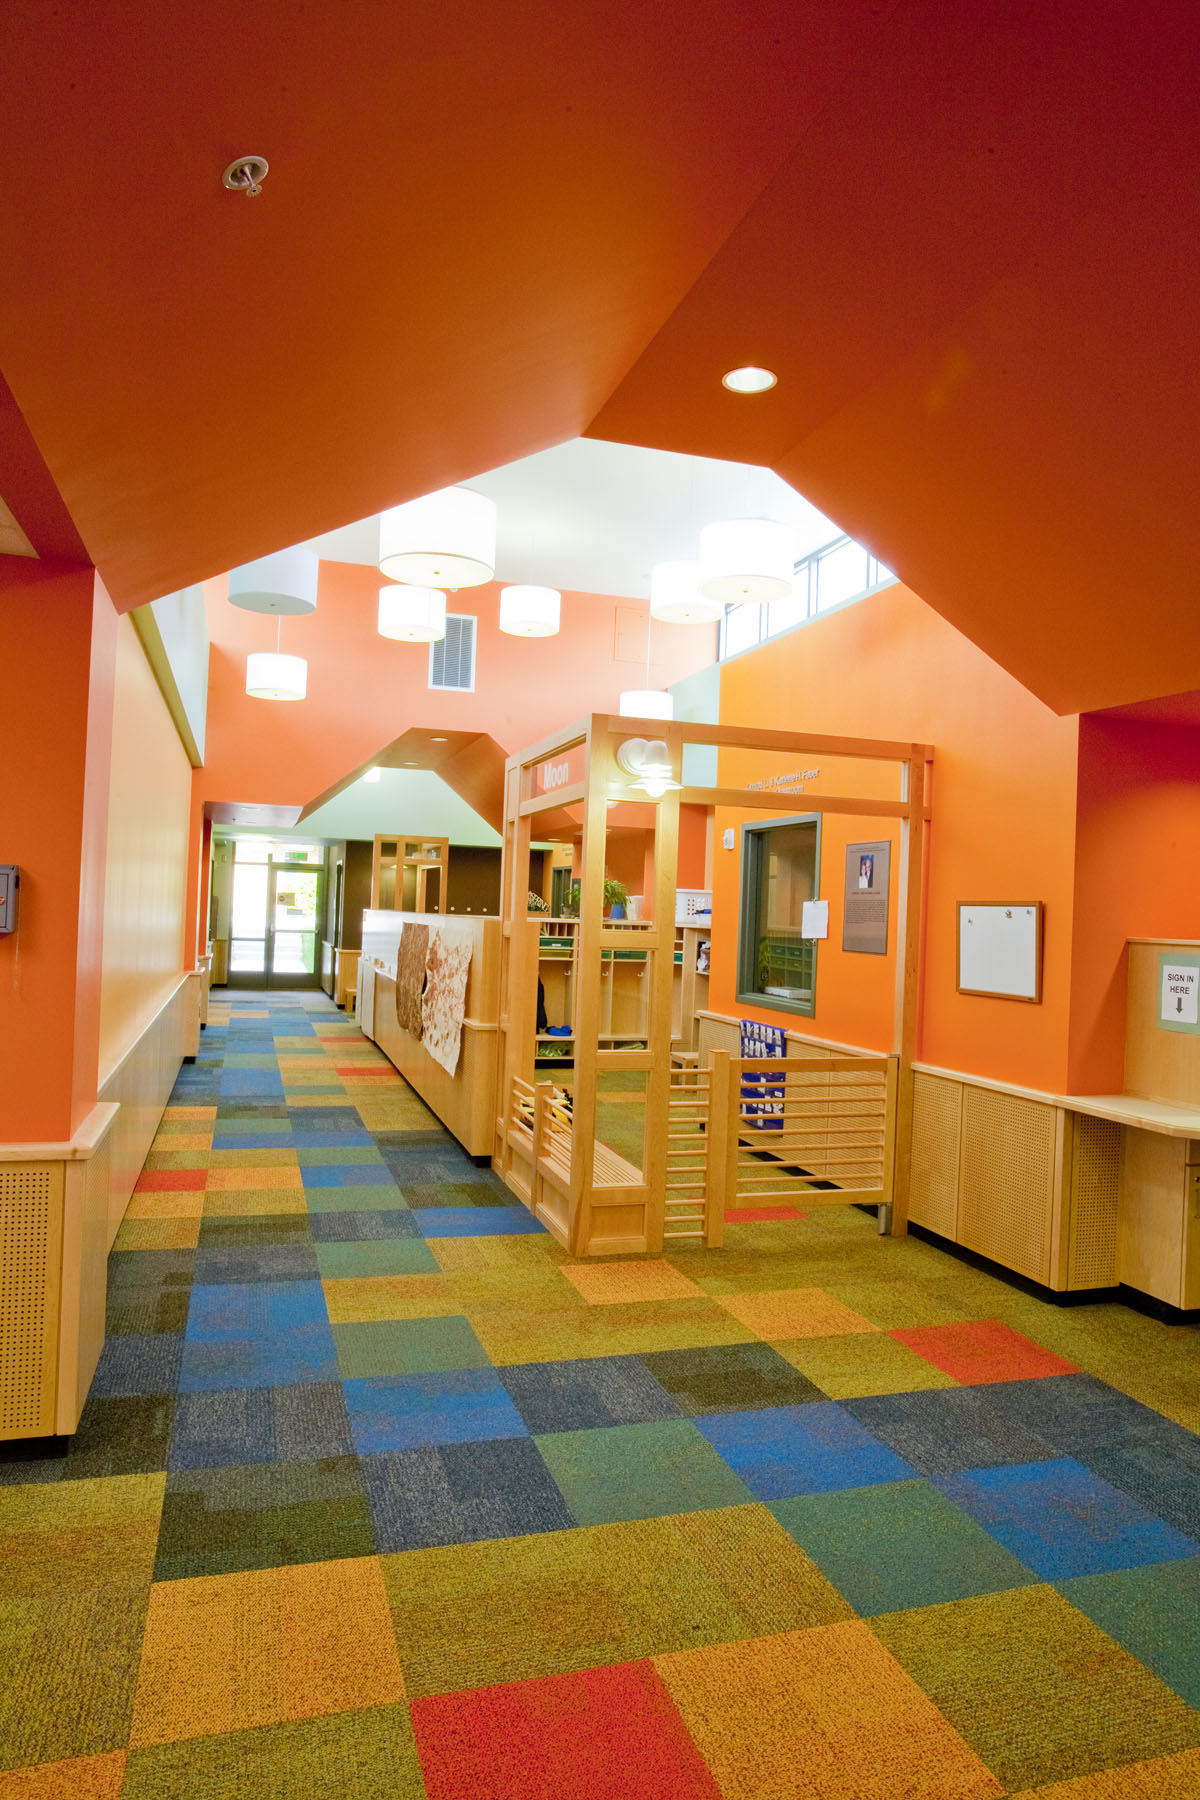 A brightly colored hallway with orange paint on the walls and ceiling in an early childhood education building.